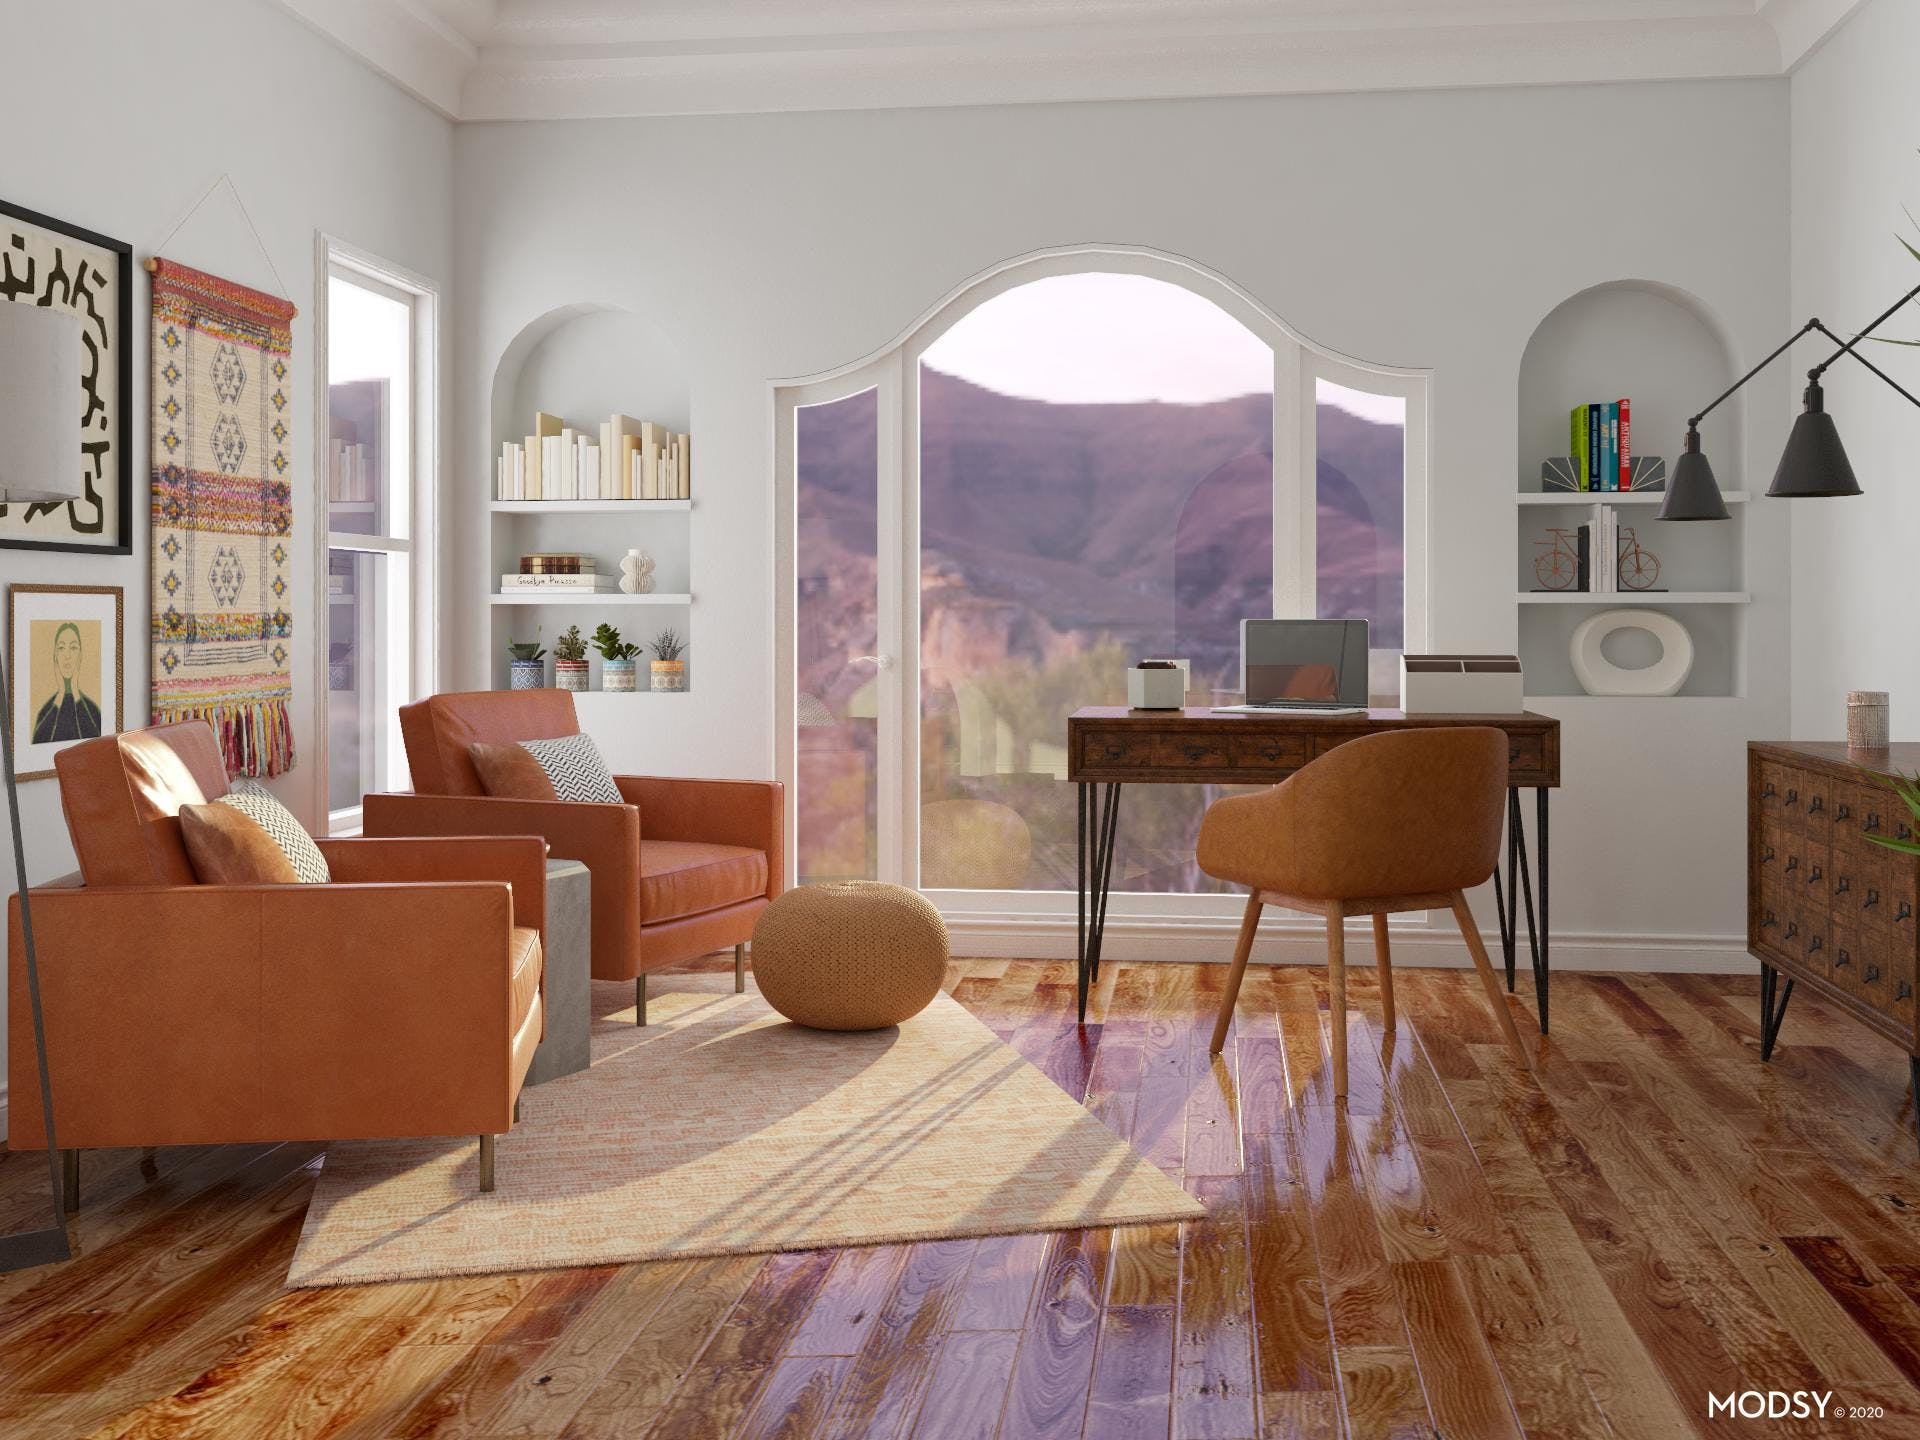 Eclectic Office: Southwestern Inspirations